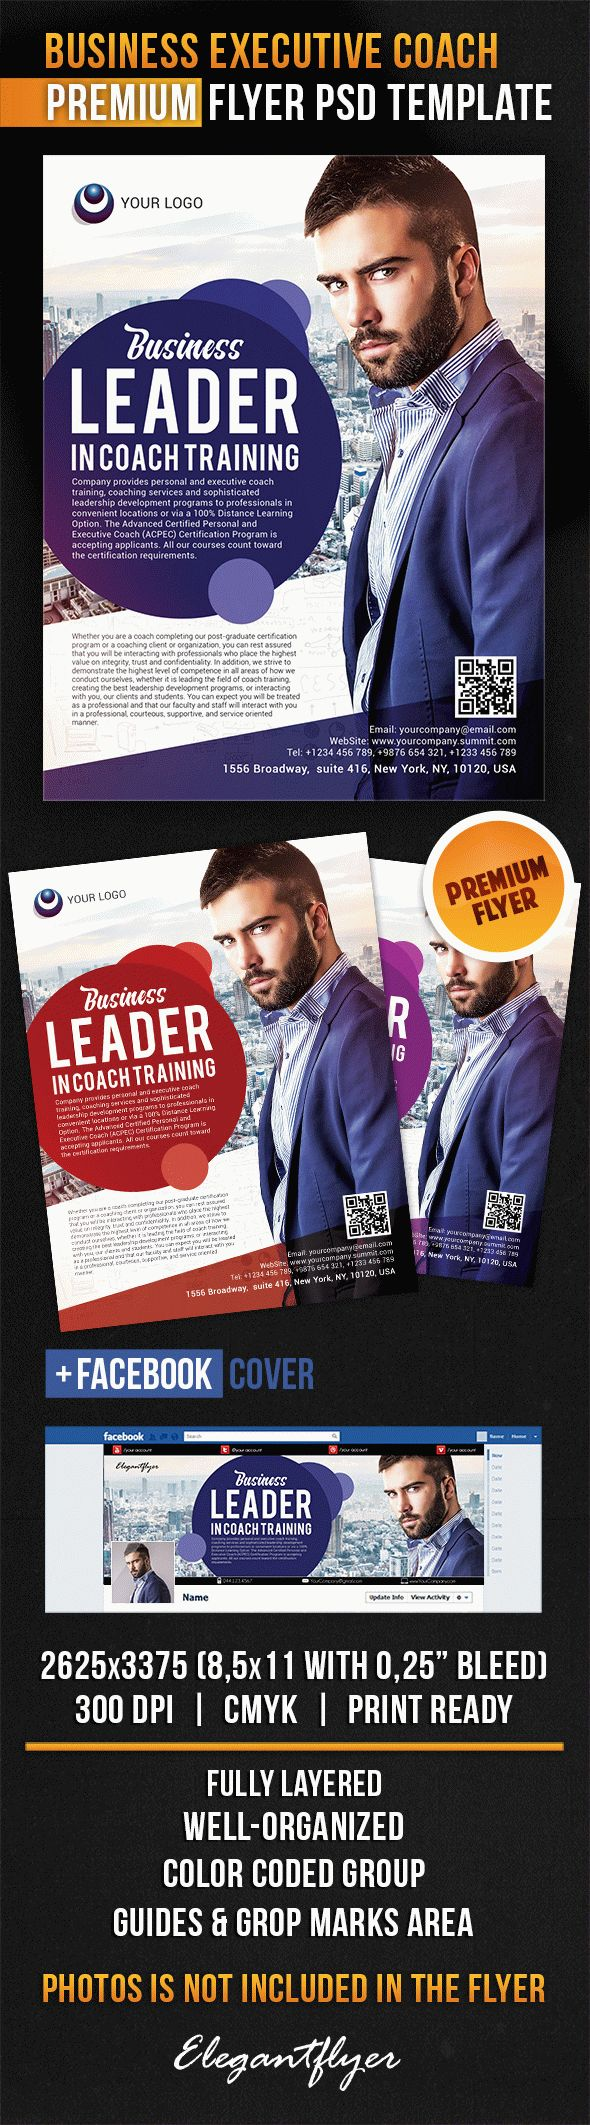 Business executive coach flyer psd template facebook cover business executive coach flyer psd template facebook cover pronofoot35fo Image collections